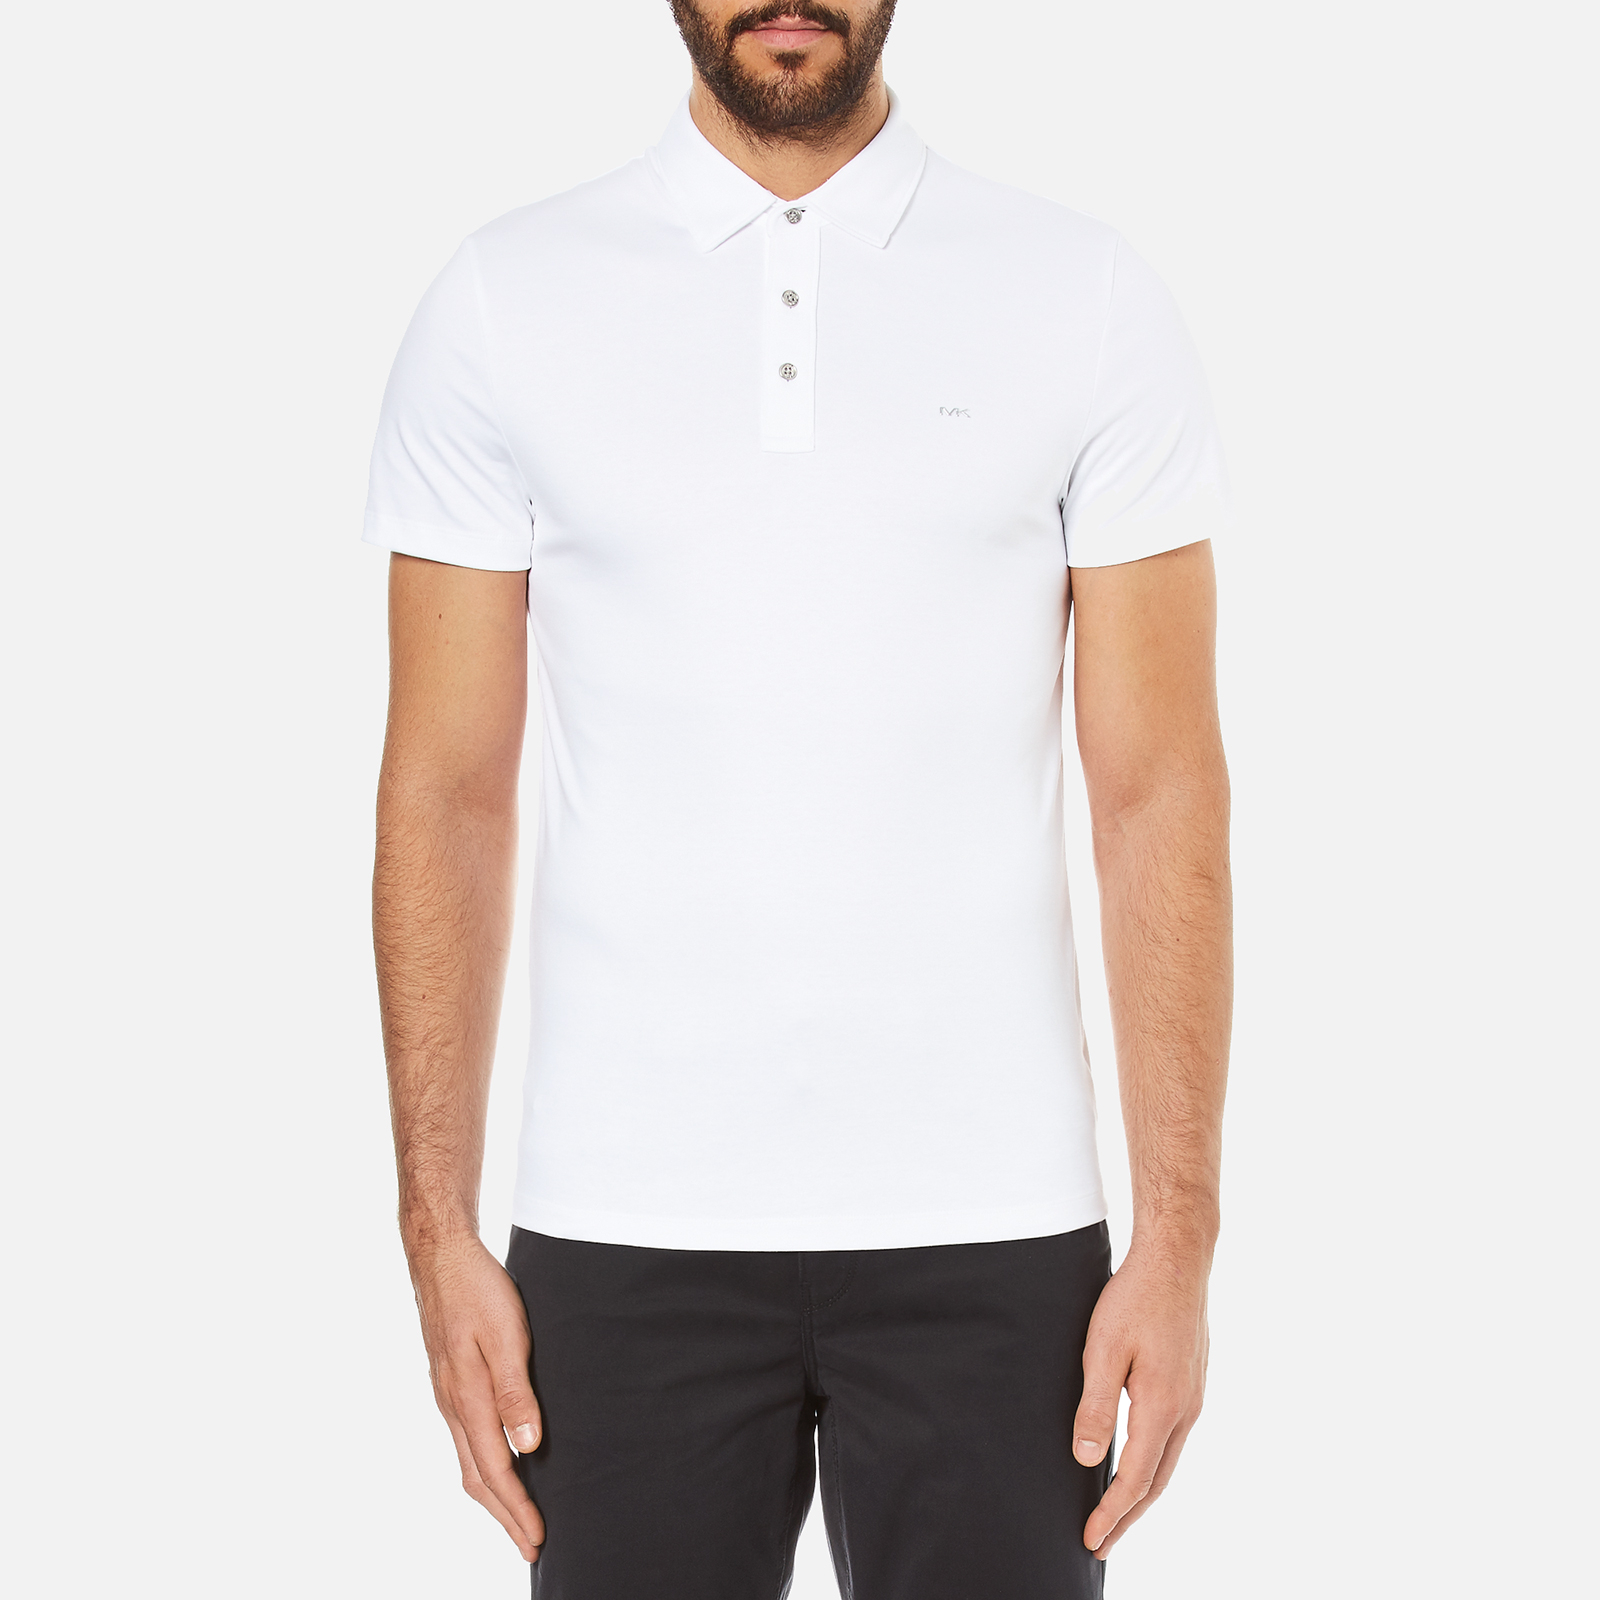 e941ba08 Michael Kors Men's Liquid Cotton Short Sleeve Polo Shirt - White - Free UK  Delivery over £50